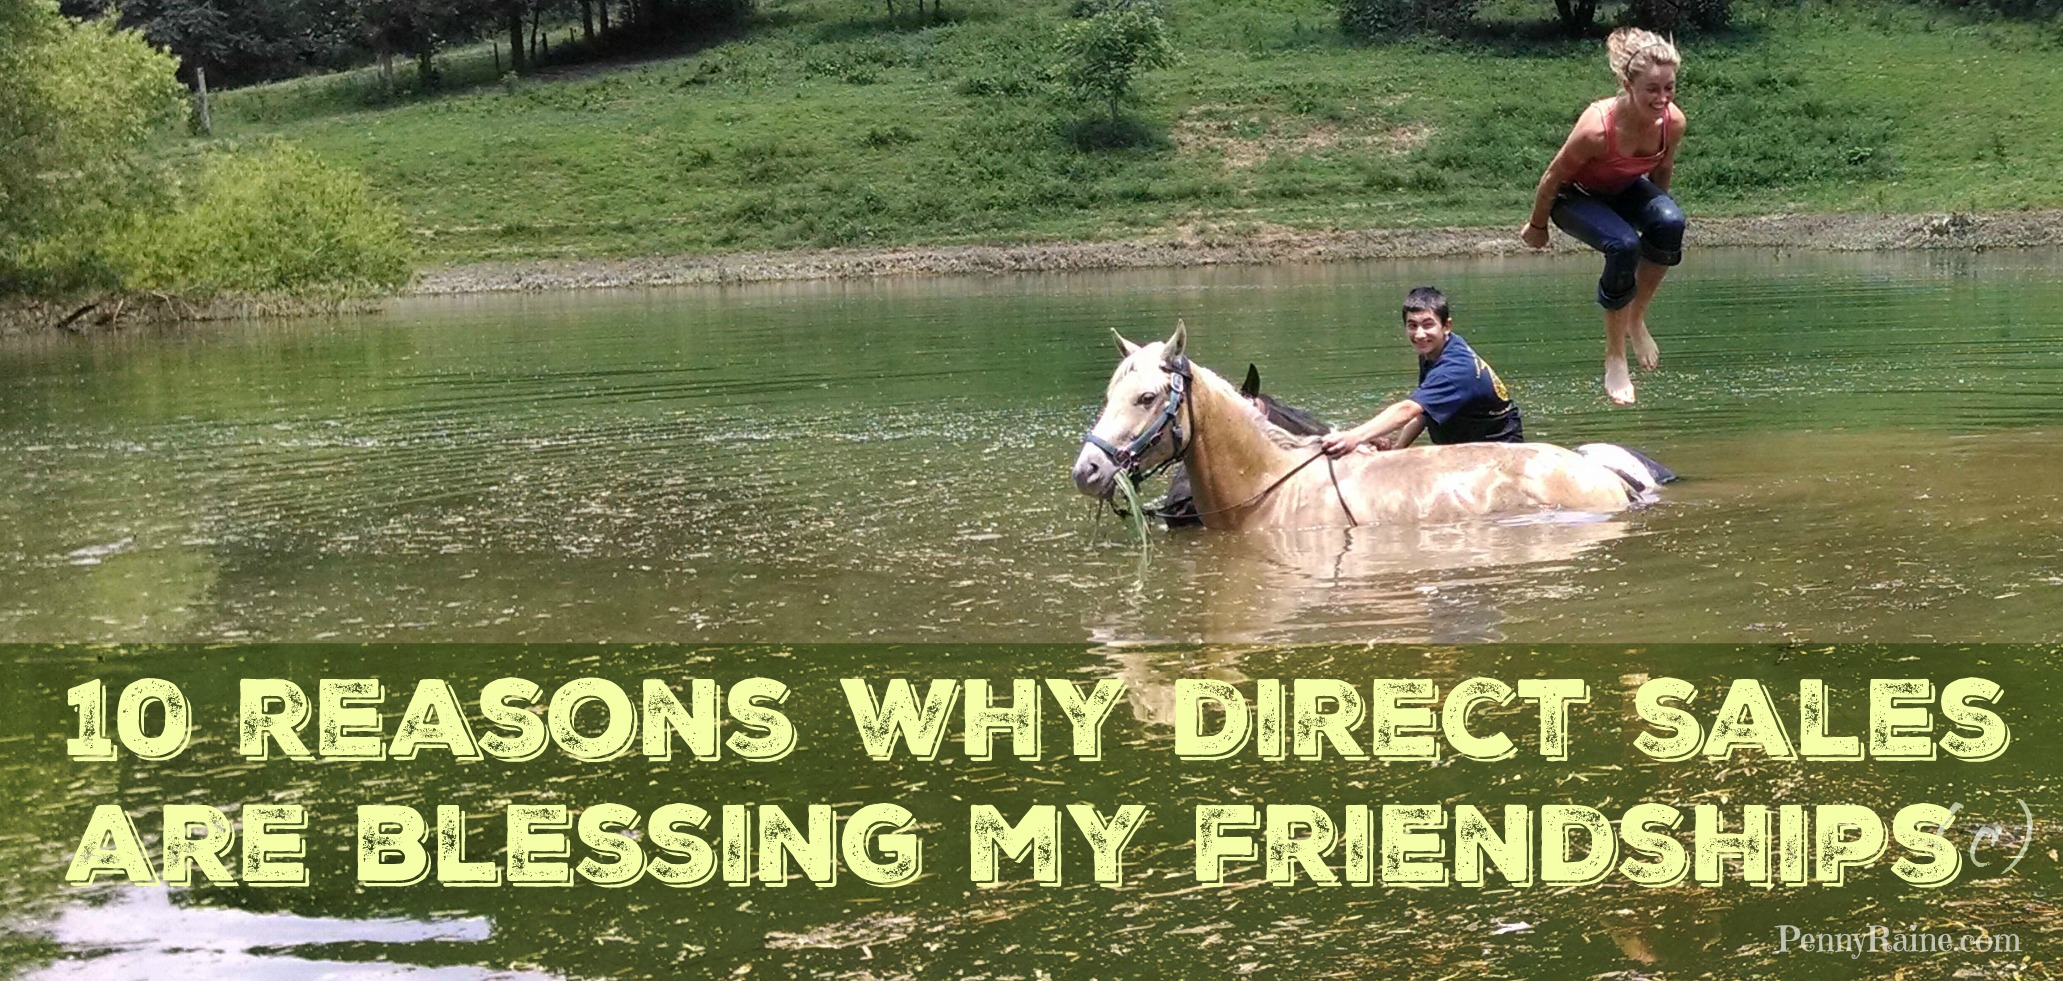 10 reasons why direct sales are blessing my friendships